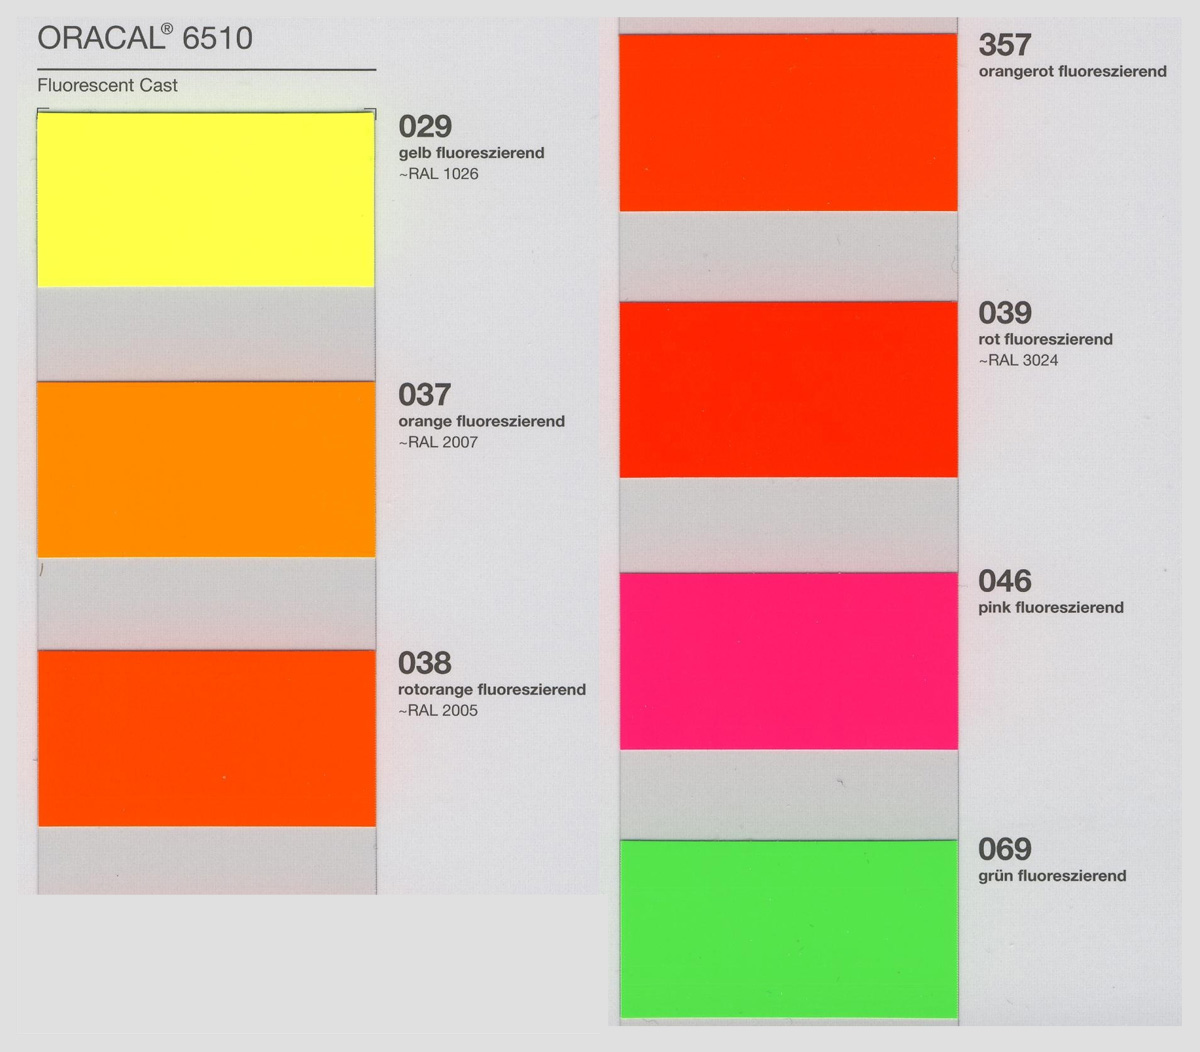 oracal 6510 colors - ORACAL 6510 Fluorescent Cast